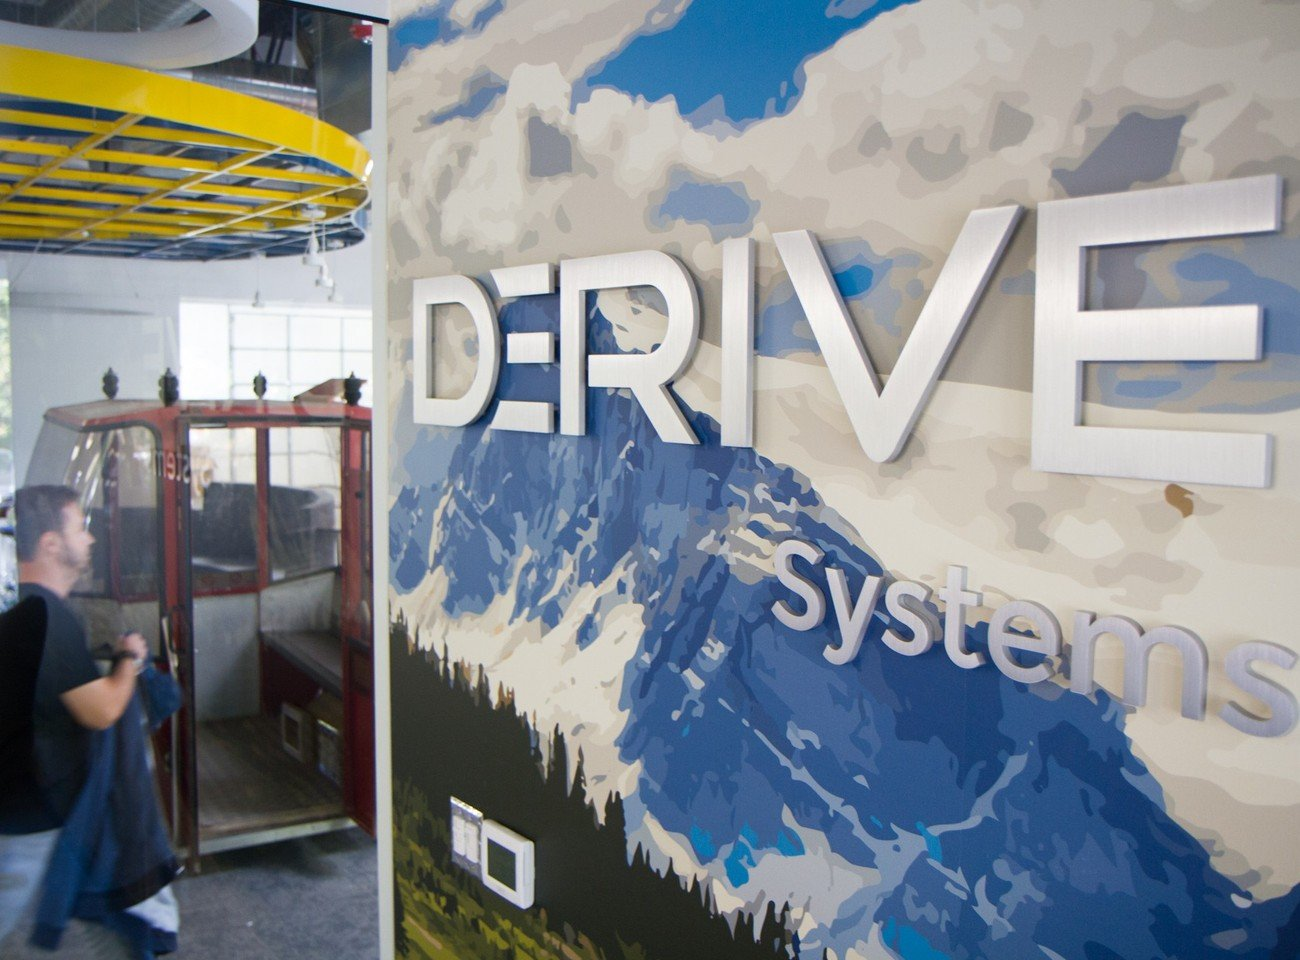 Derive Systems Careers